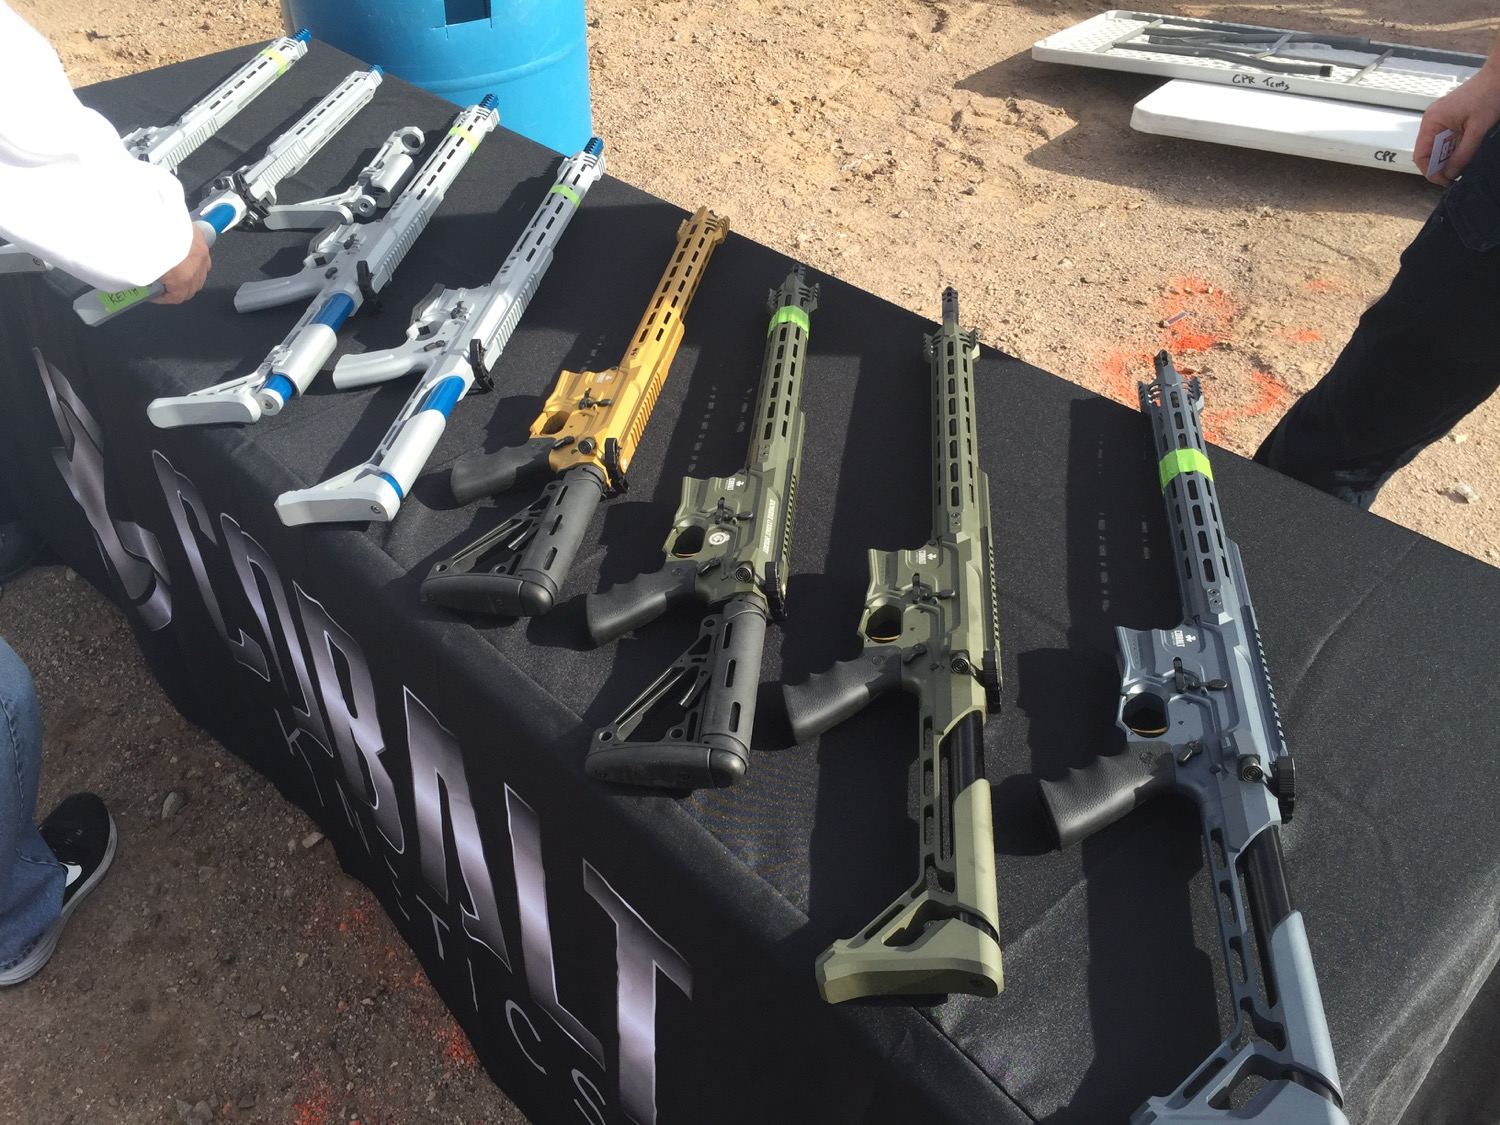 Arguably the most distinctive look at Range Day...